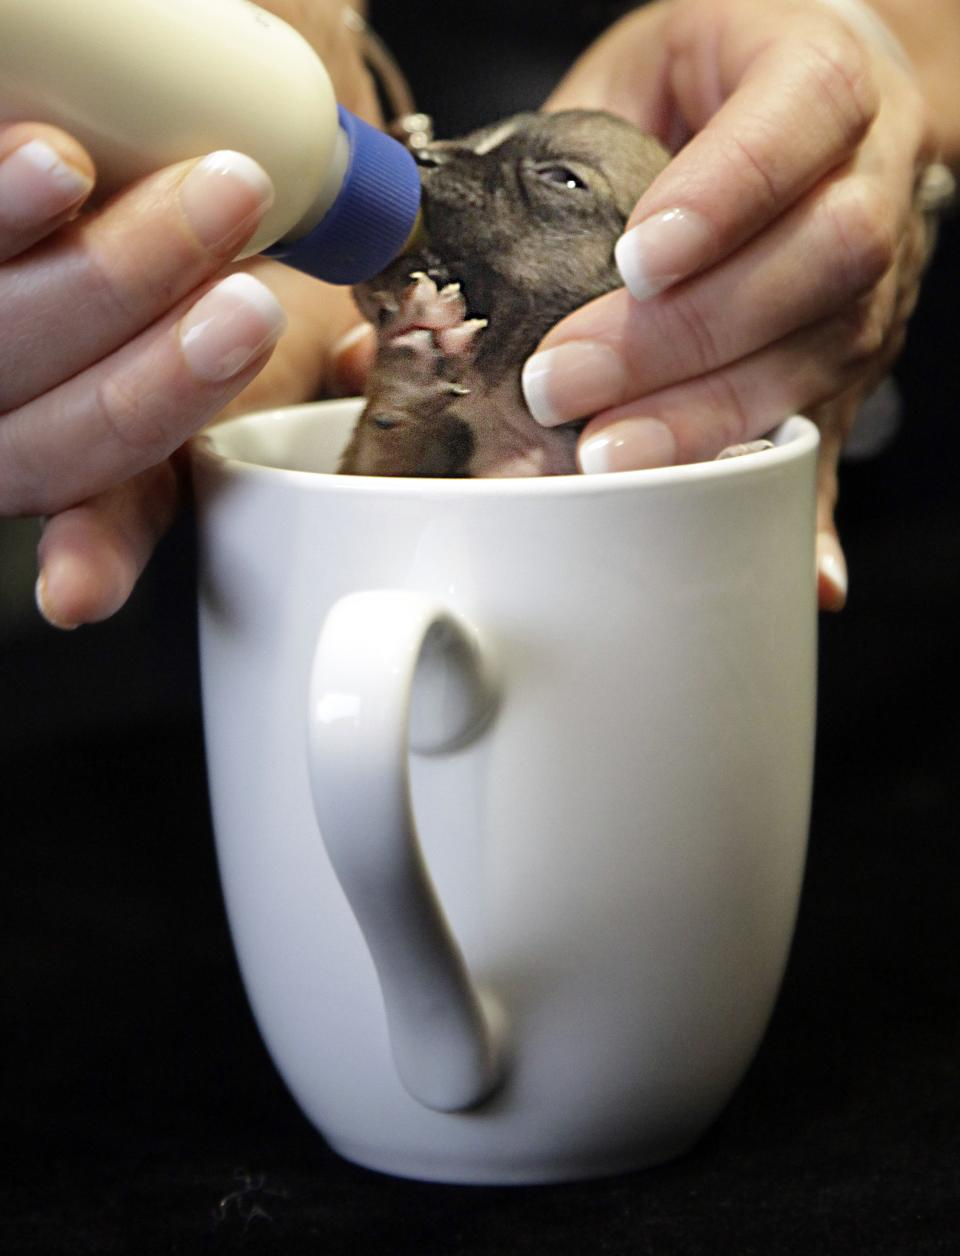 Beyonce, a Dachshund puppy vying for the title of World's Smallest Dog,  is fed in a coffee cup, during an interview on Wednesday, March 28, 2012 in New York.  Animal rescuers in Northern California say Beyonce was so small at birth that she could fit into a spoon.  (AP Photo/Bebeto Matthews)